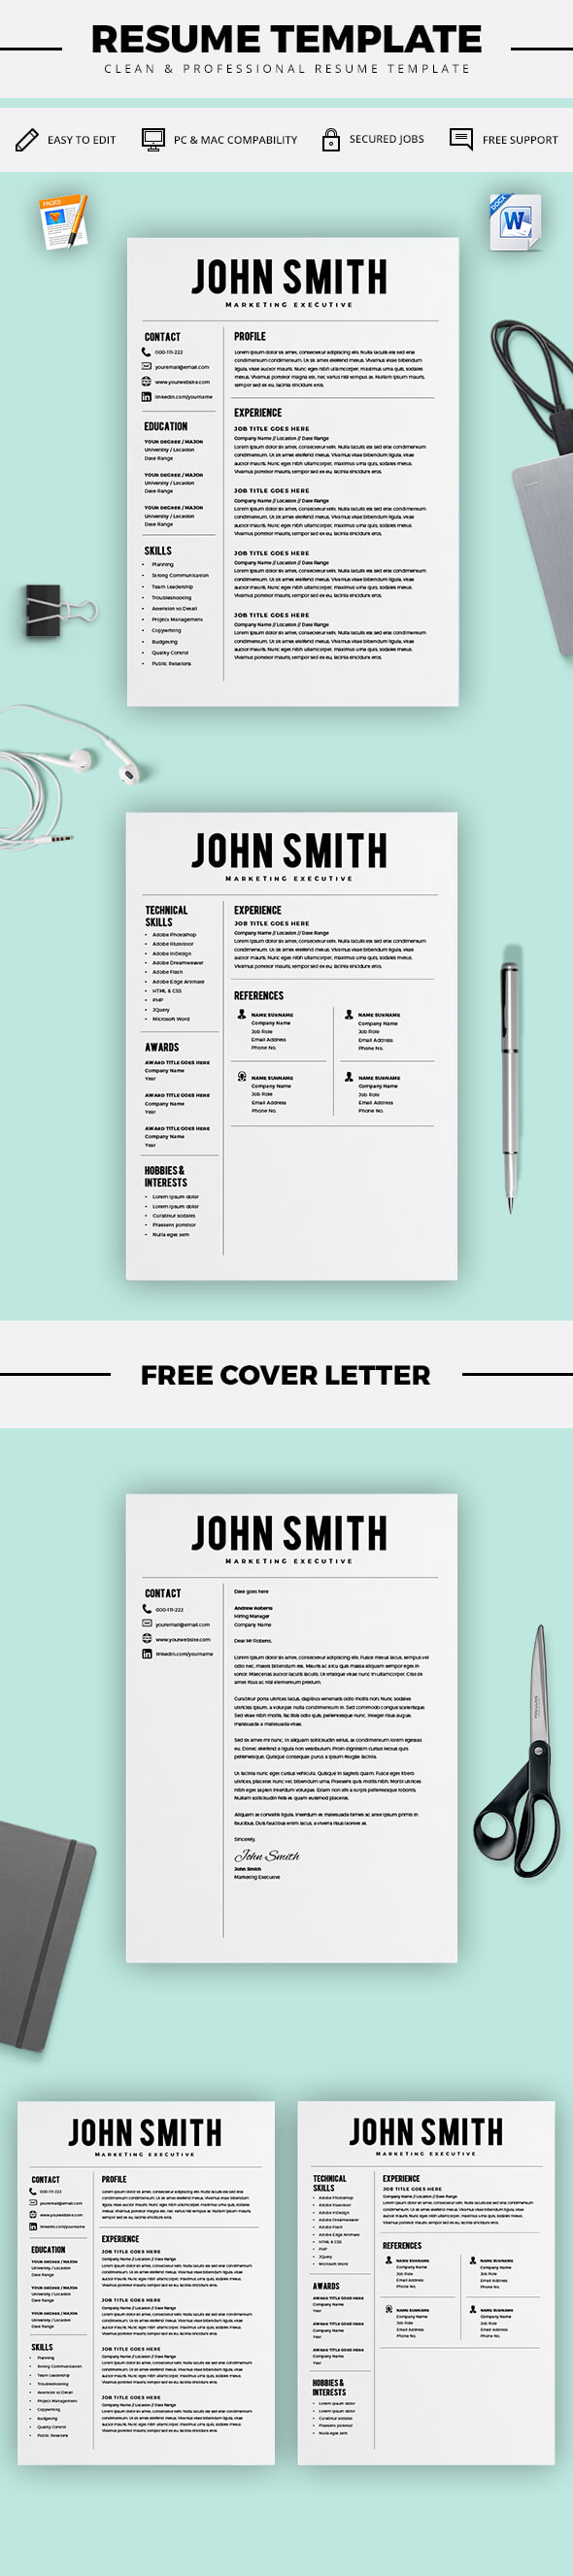 resume template resume builder cv template free cover letter ms word on - Microsoft Resume Template